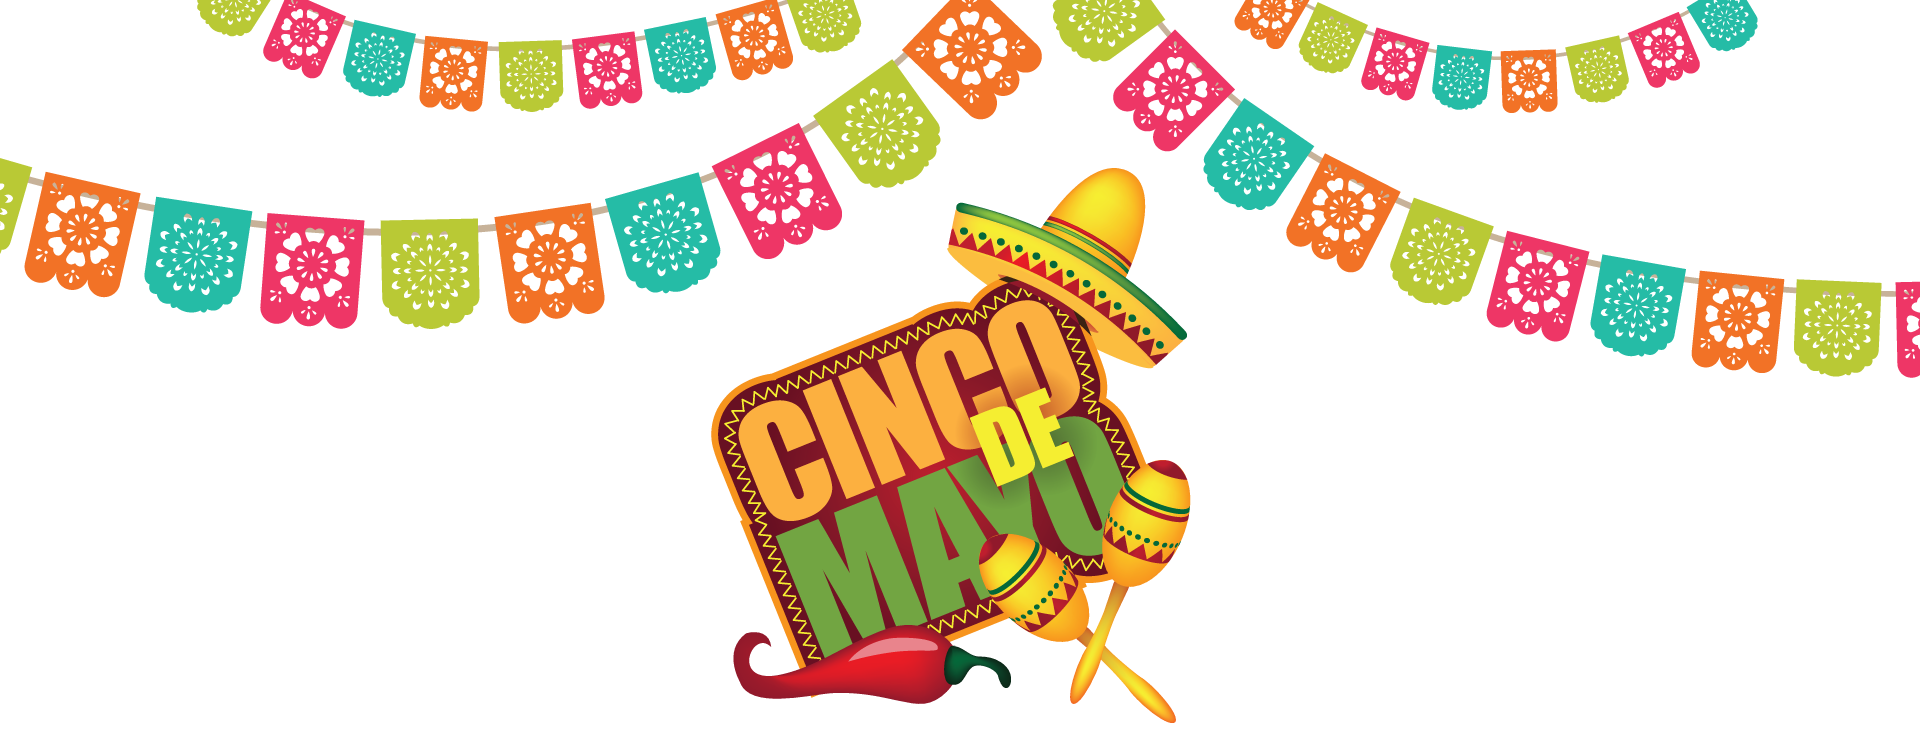 picture stock Posada cincodemayologoheader. Banners transparent cinco de mayo